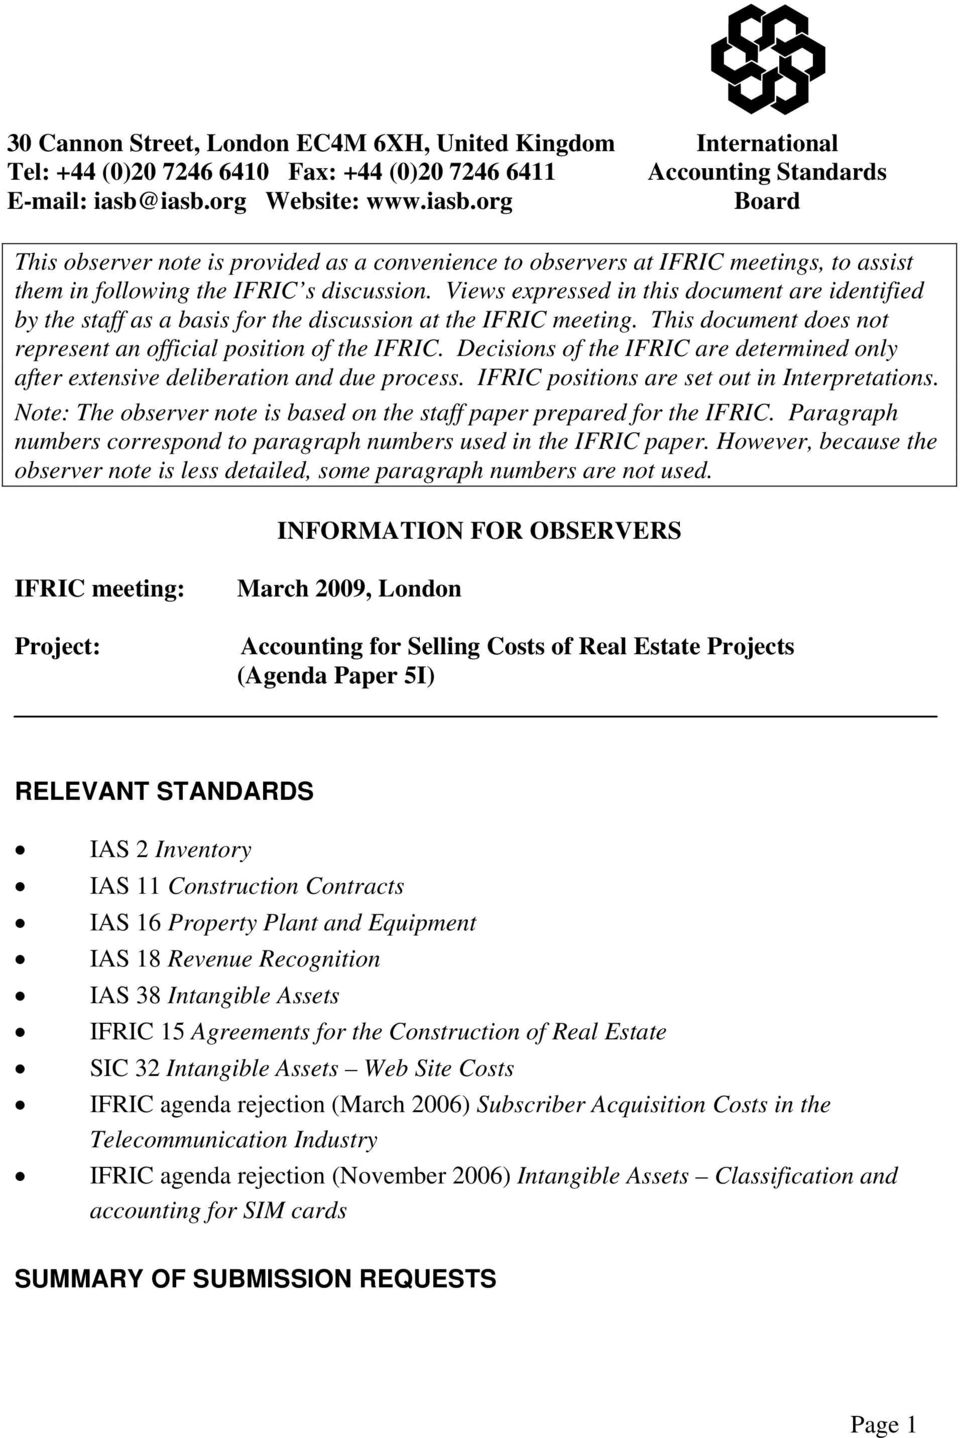 Views expressed in this document are identified by the staff as a basis for the discussion at the IFRIC meeting. This document does not represent an official position of the IFRIC.